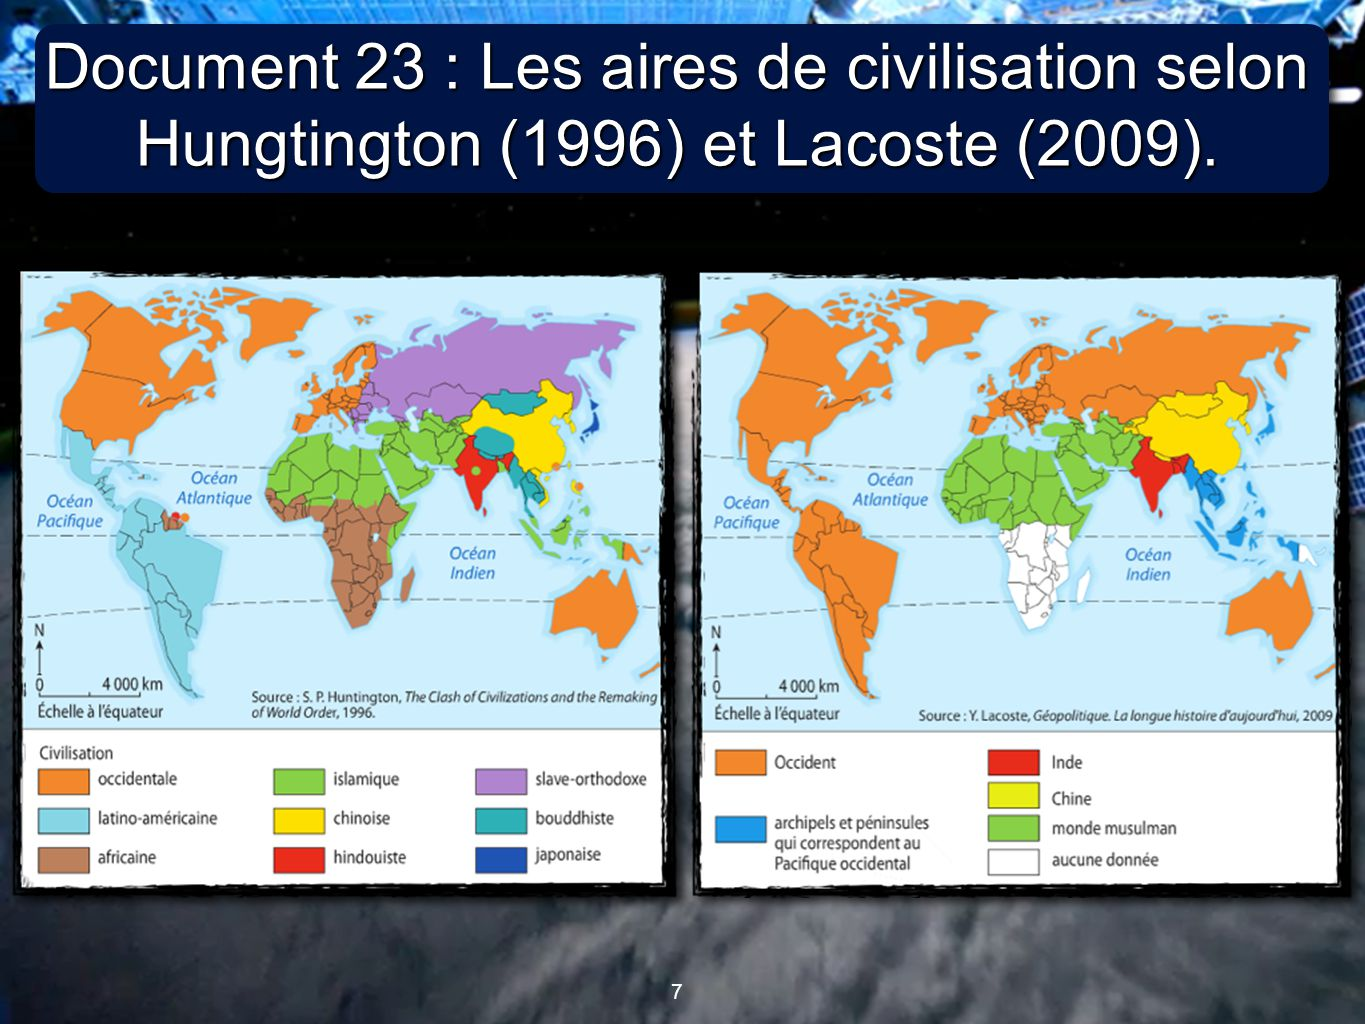 Document 23 : Les aires de civilisation selon Hungtington (1996) et Lacoste (2009).